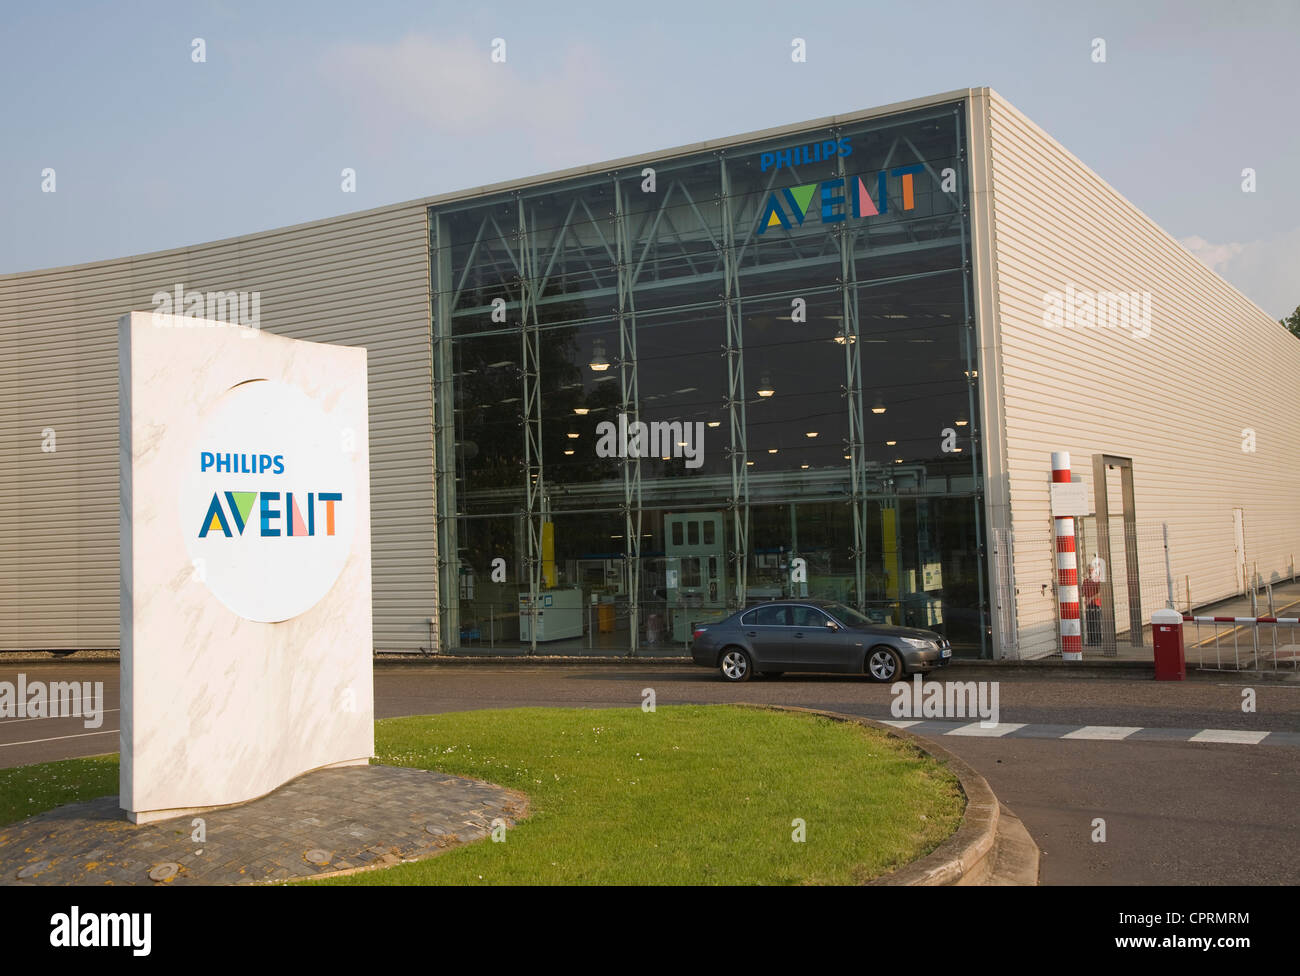 Philips Avent factory Glemsford Suffolk England - Stock Image